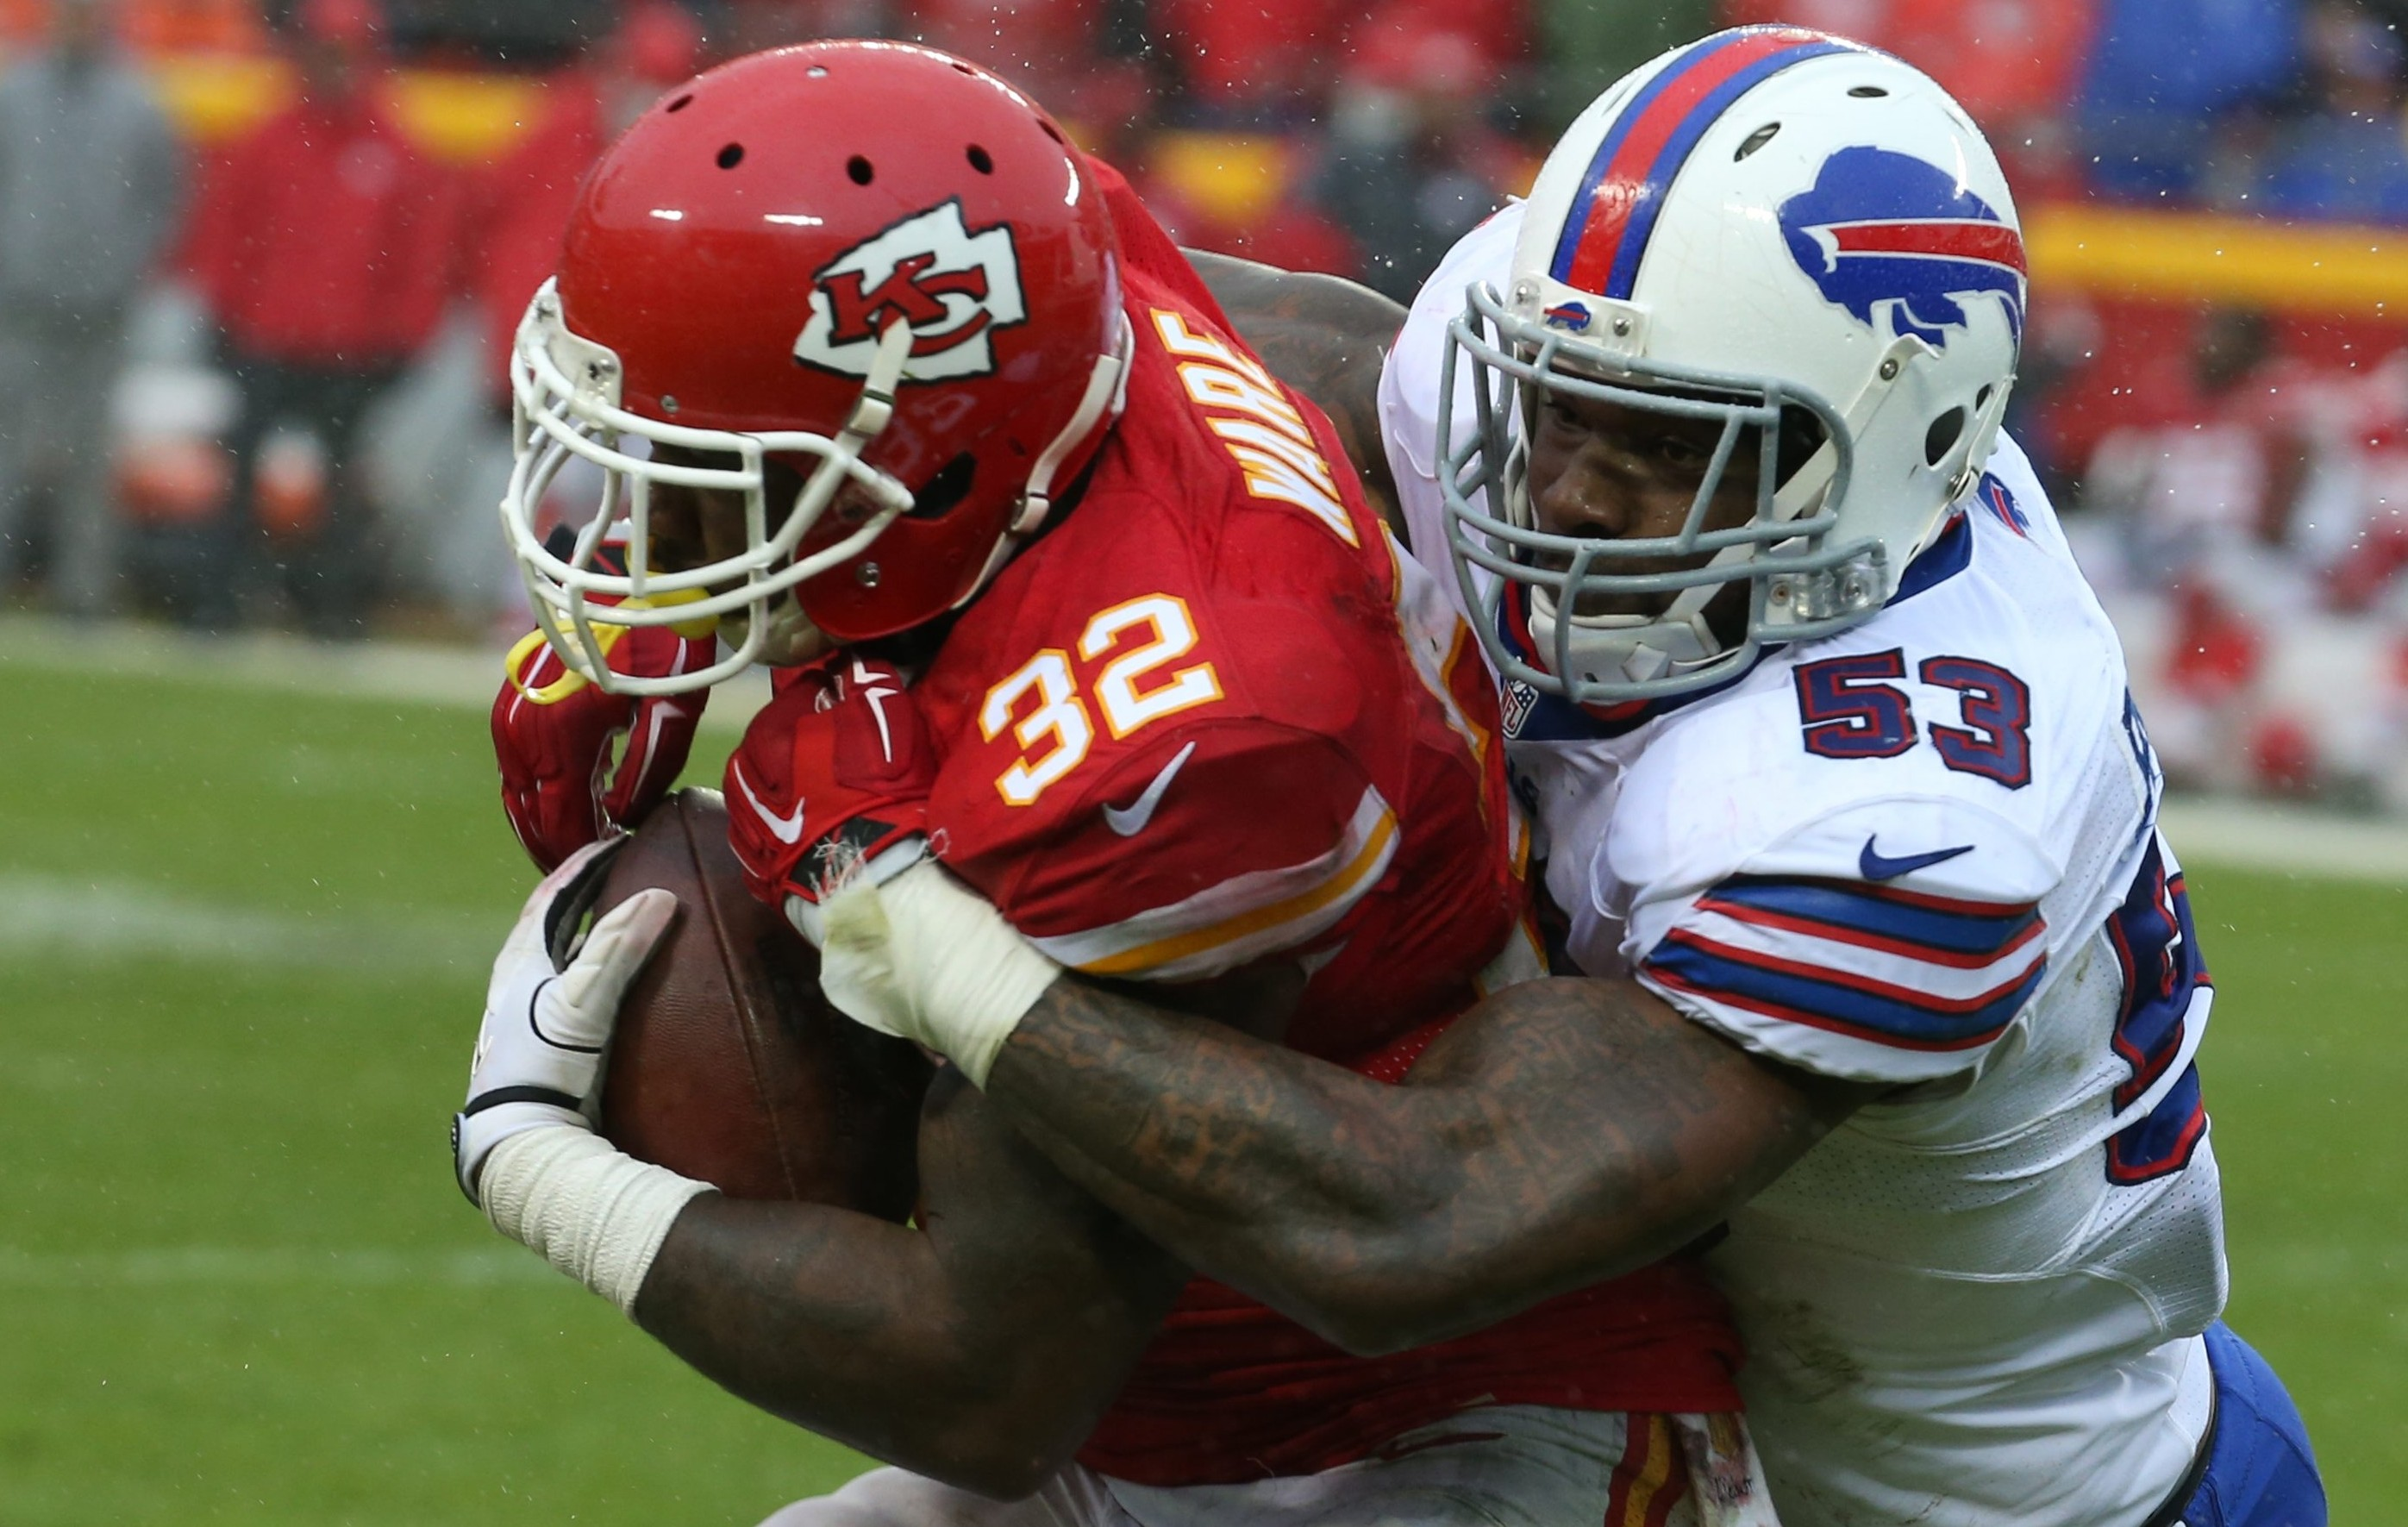 Bills linebacker Nigel Bradham is an unrestricted free agent who may not fit Rex Ryan's defense and the team's salary cap limitations.